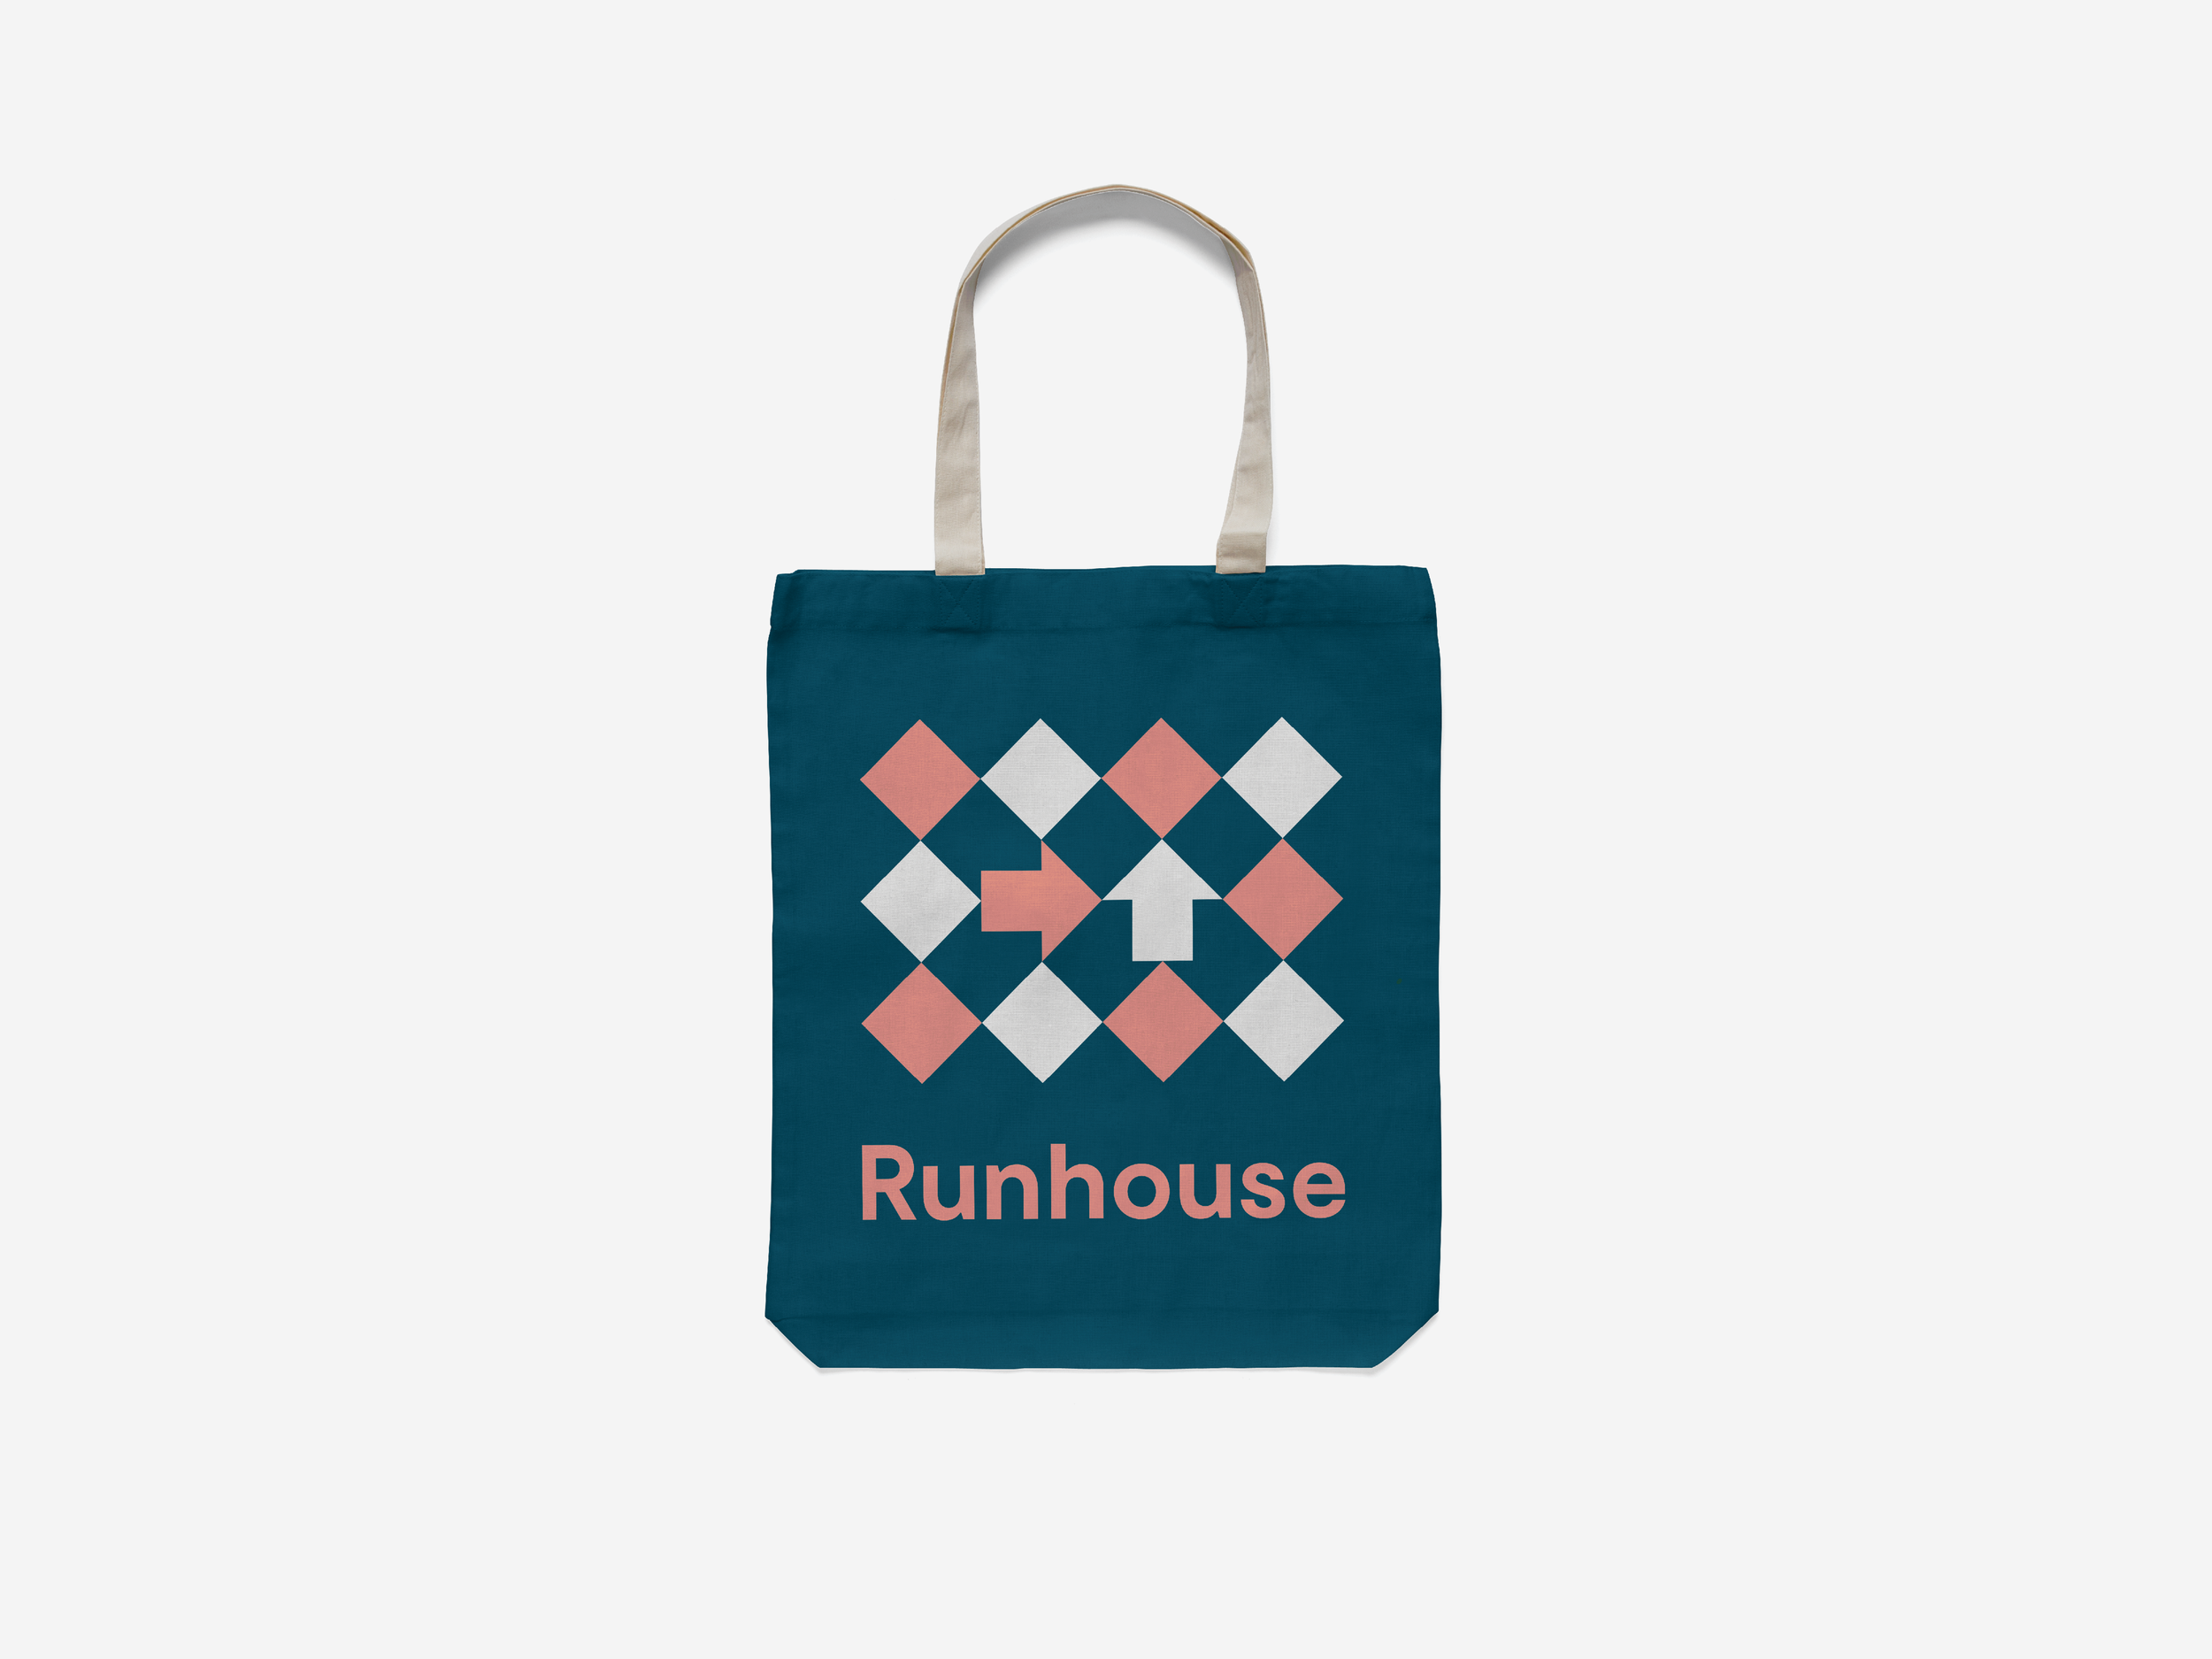 3 Runhouse branded bag.png